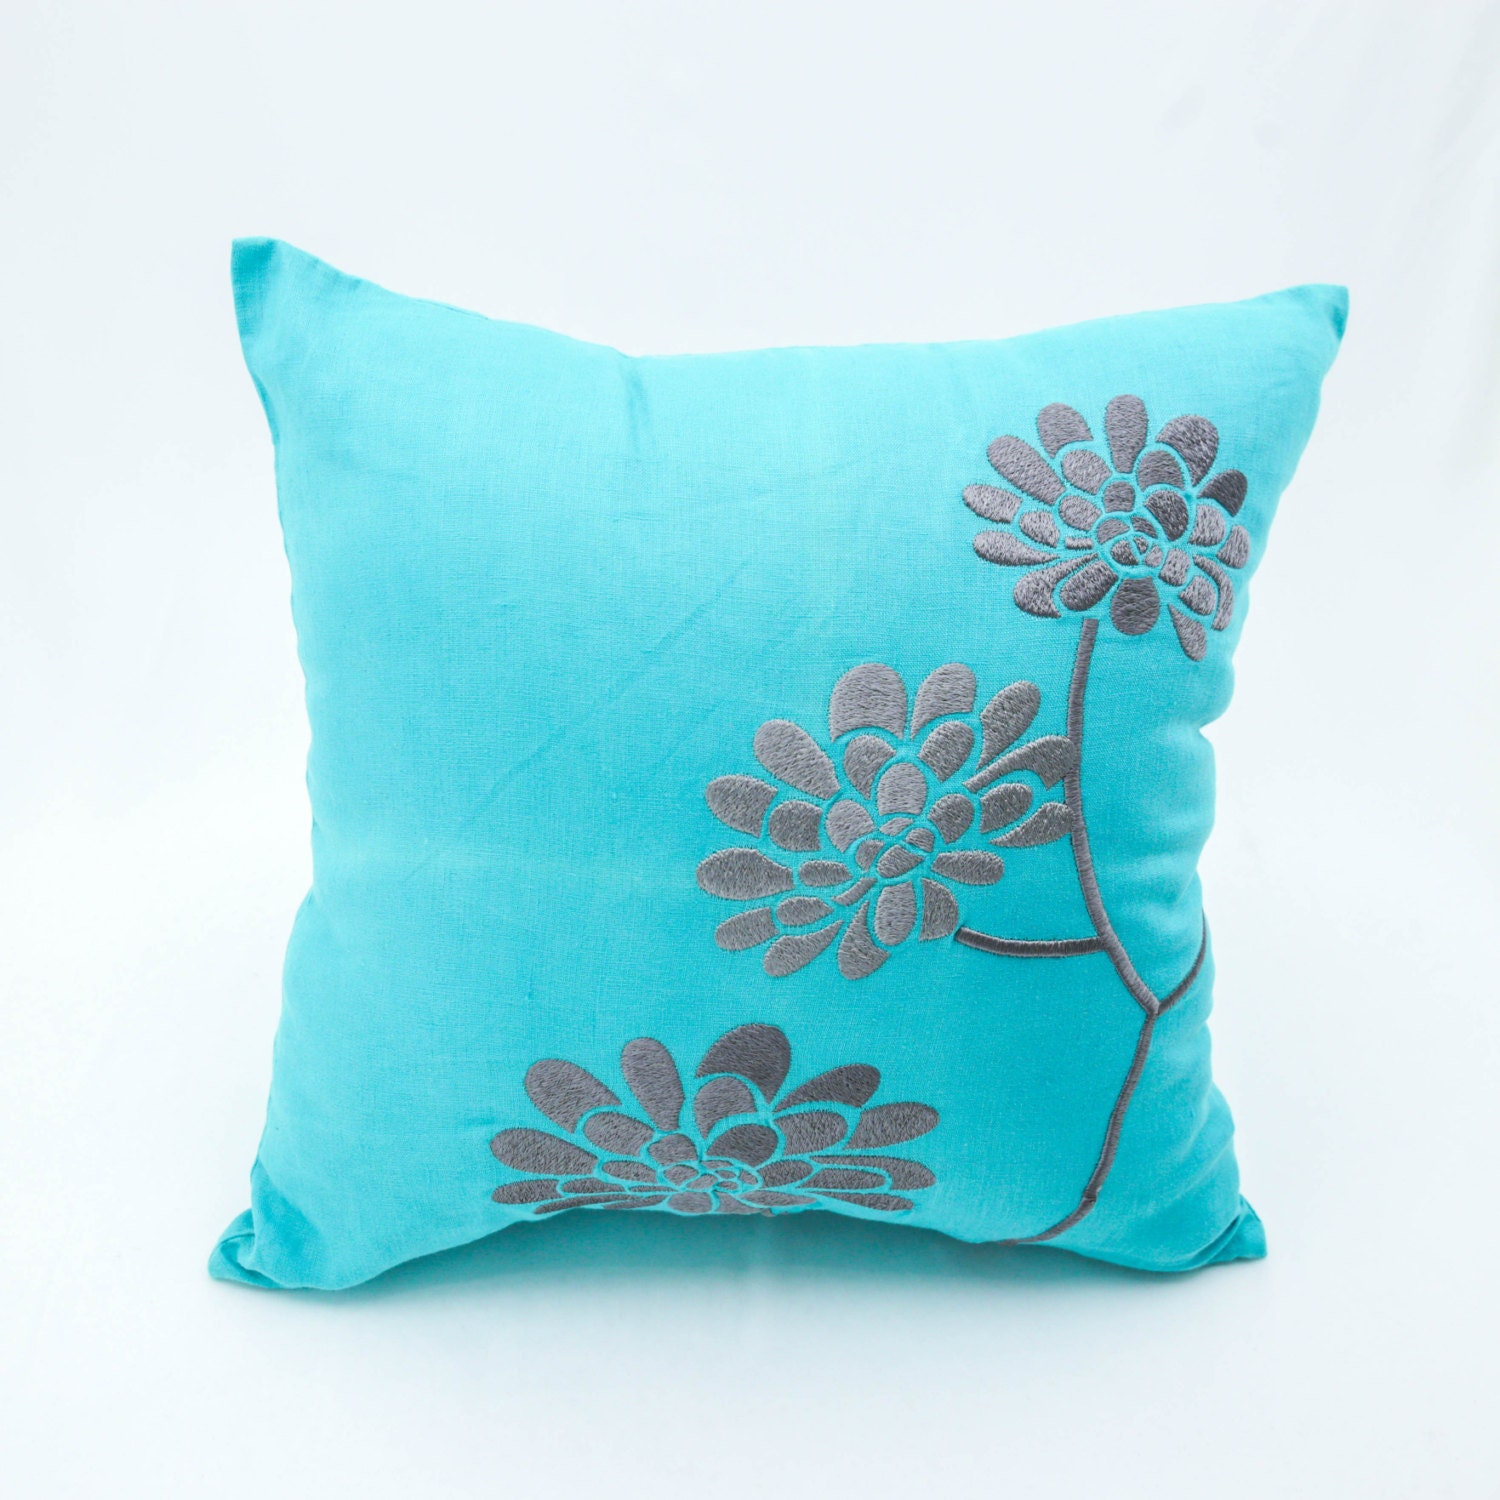 Throw Pillow Covers Teal : Teal Throw Pillow Cover Teal Linen Gray Peony Flower